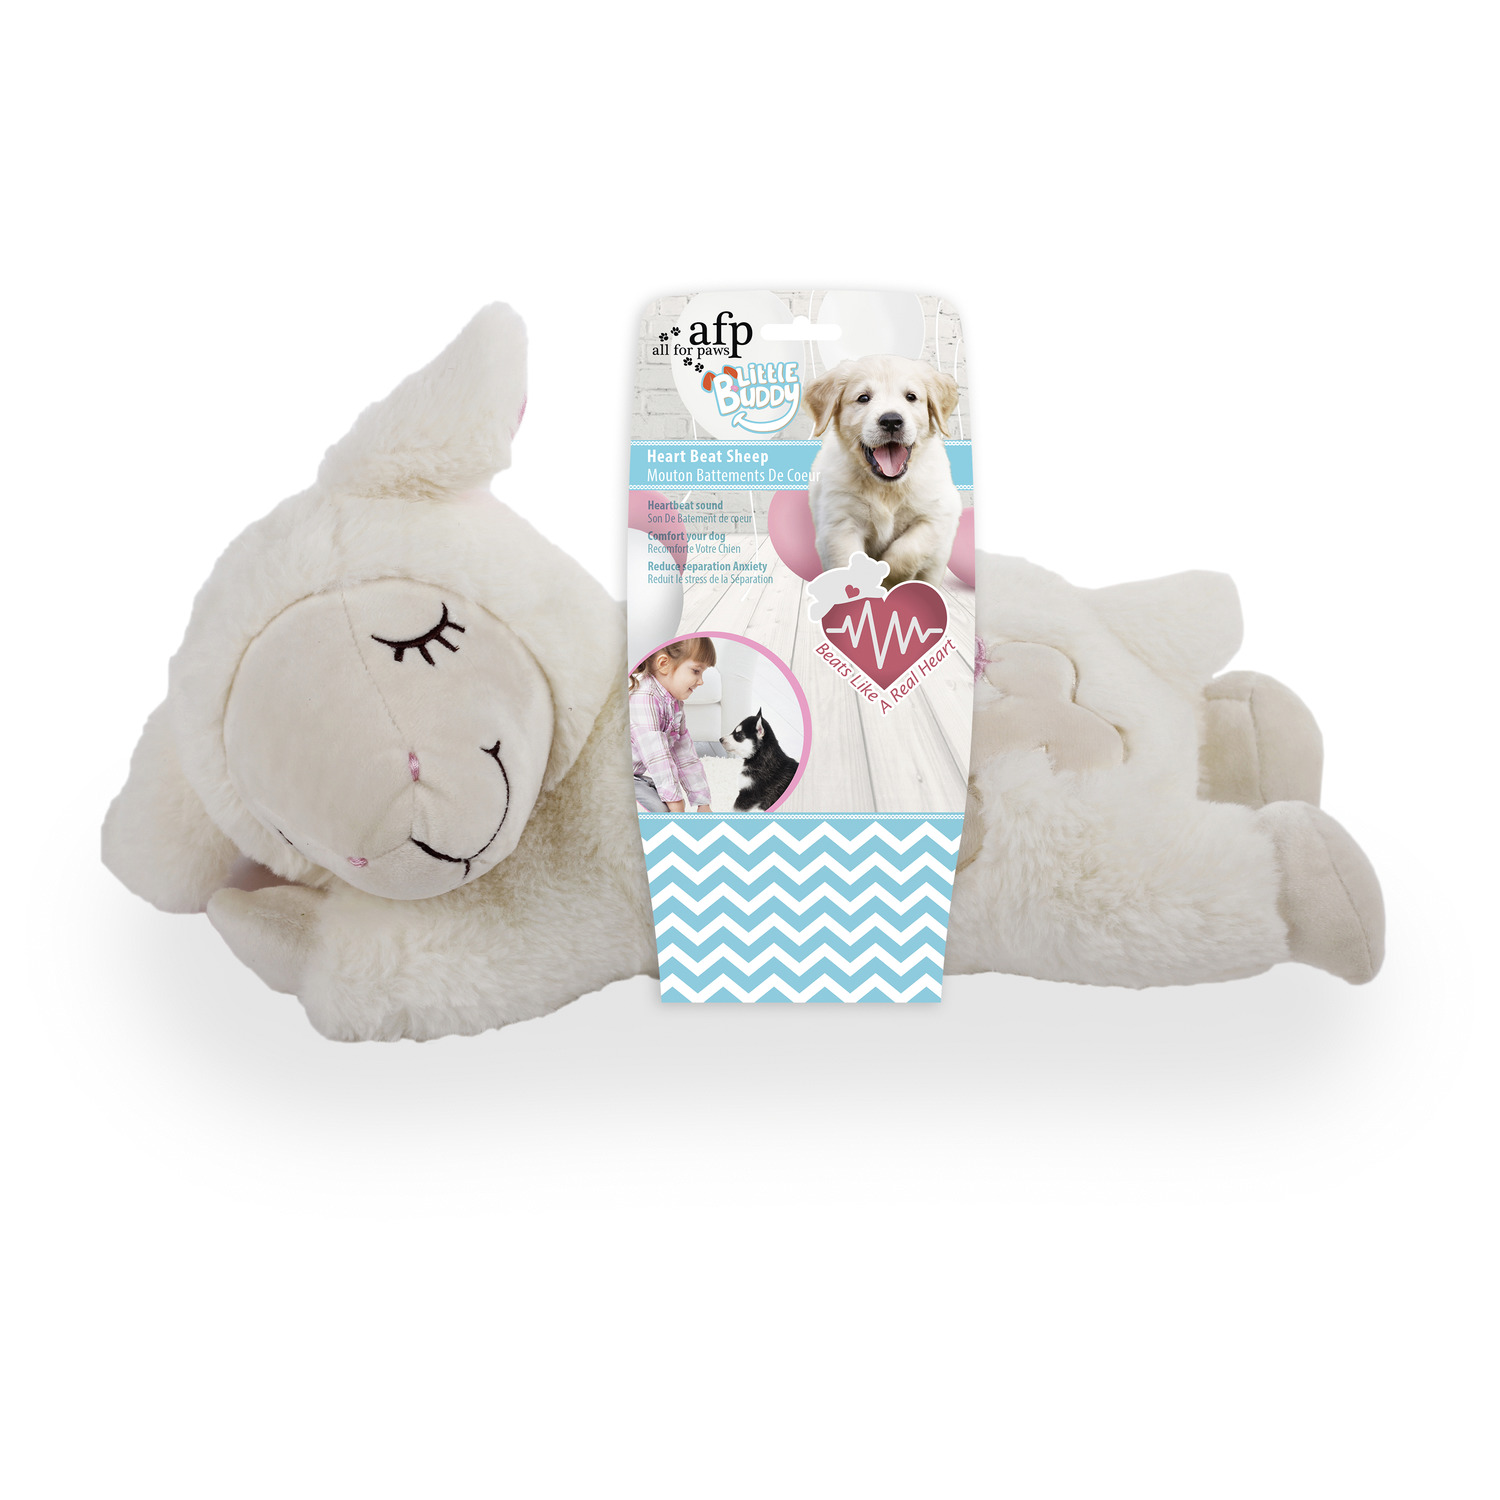 All-For-Paws-Little-Buddy-Heart-Beat-Sheep-Hondenspeelgoed-44x38x14-cm-Wit